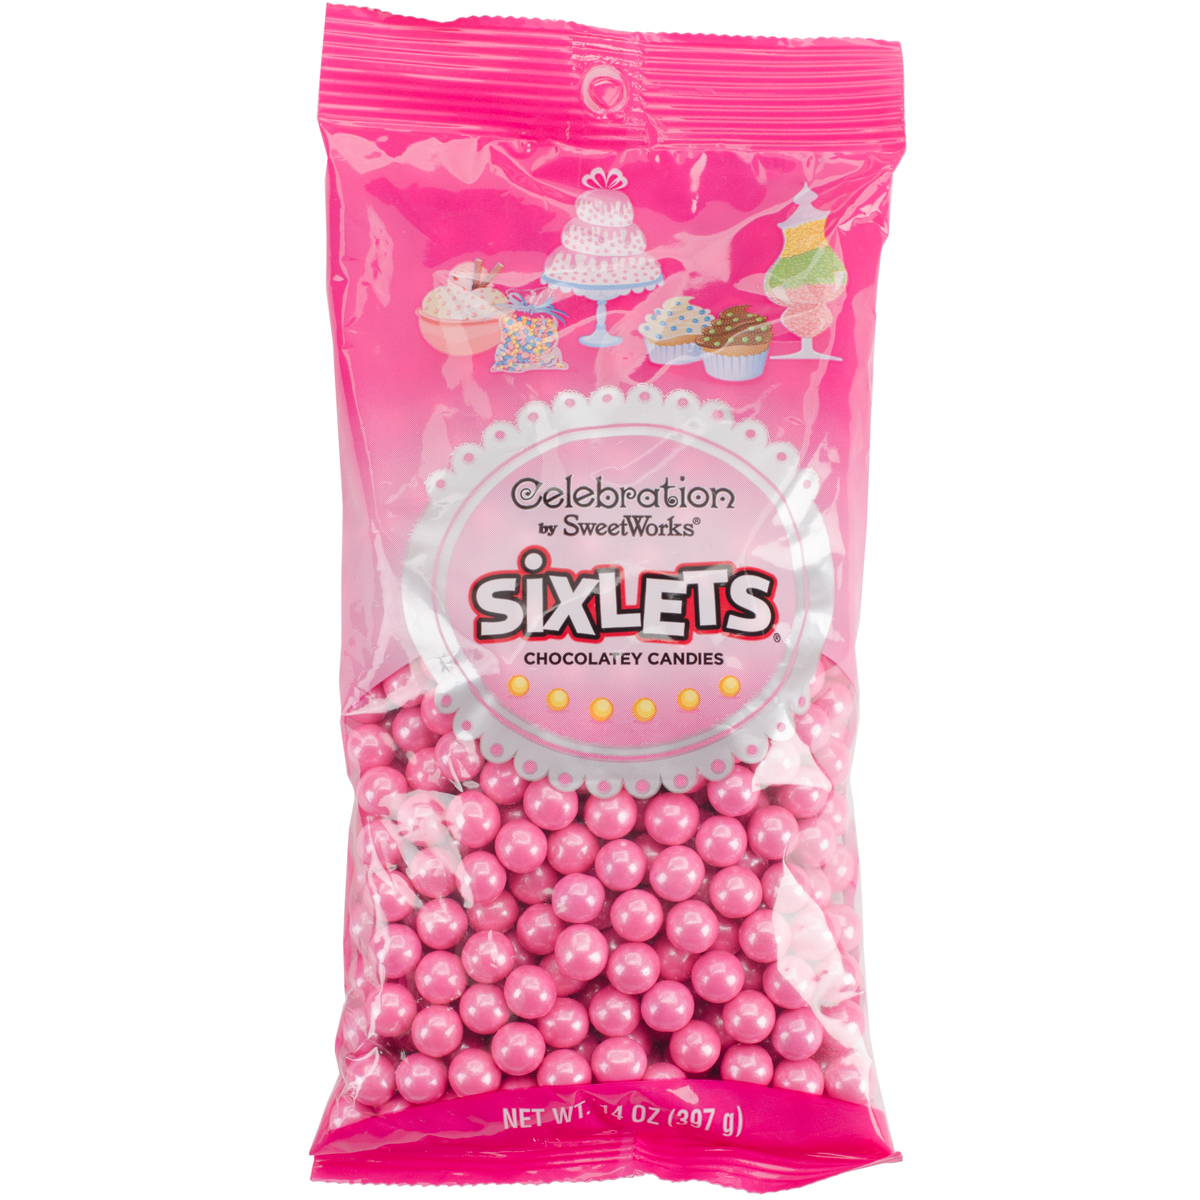 Celebration by SweetWorks Sixlets Chocolate Flavored Pink Candy, 14 oz